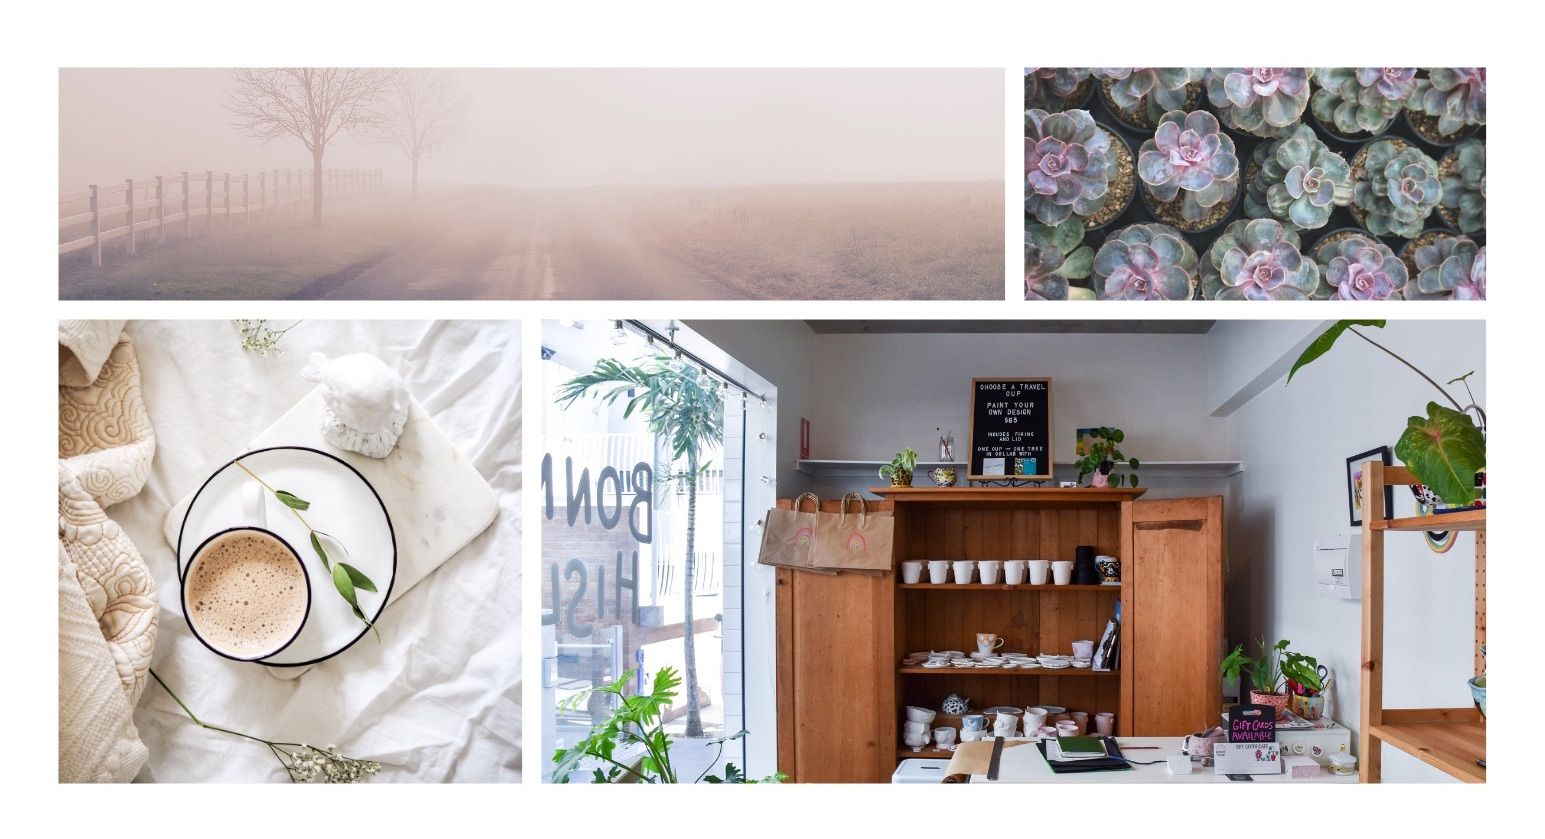 Example of images for boutique shop